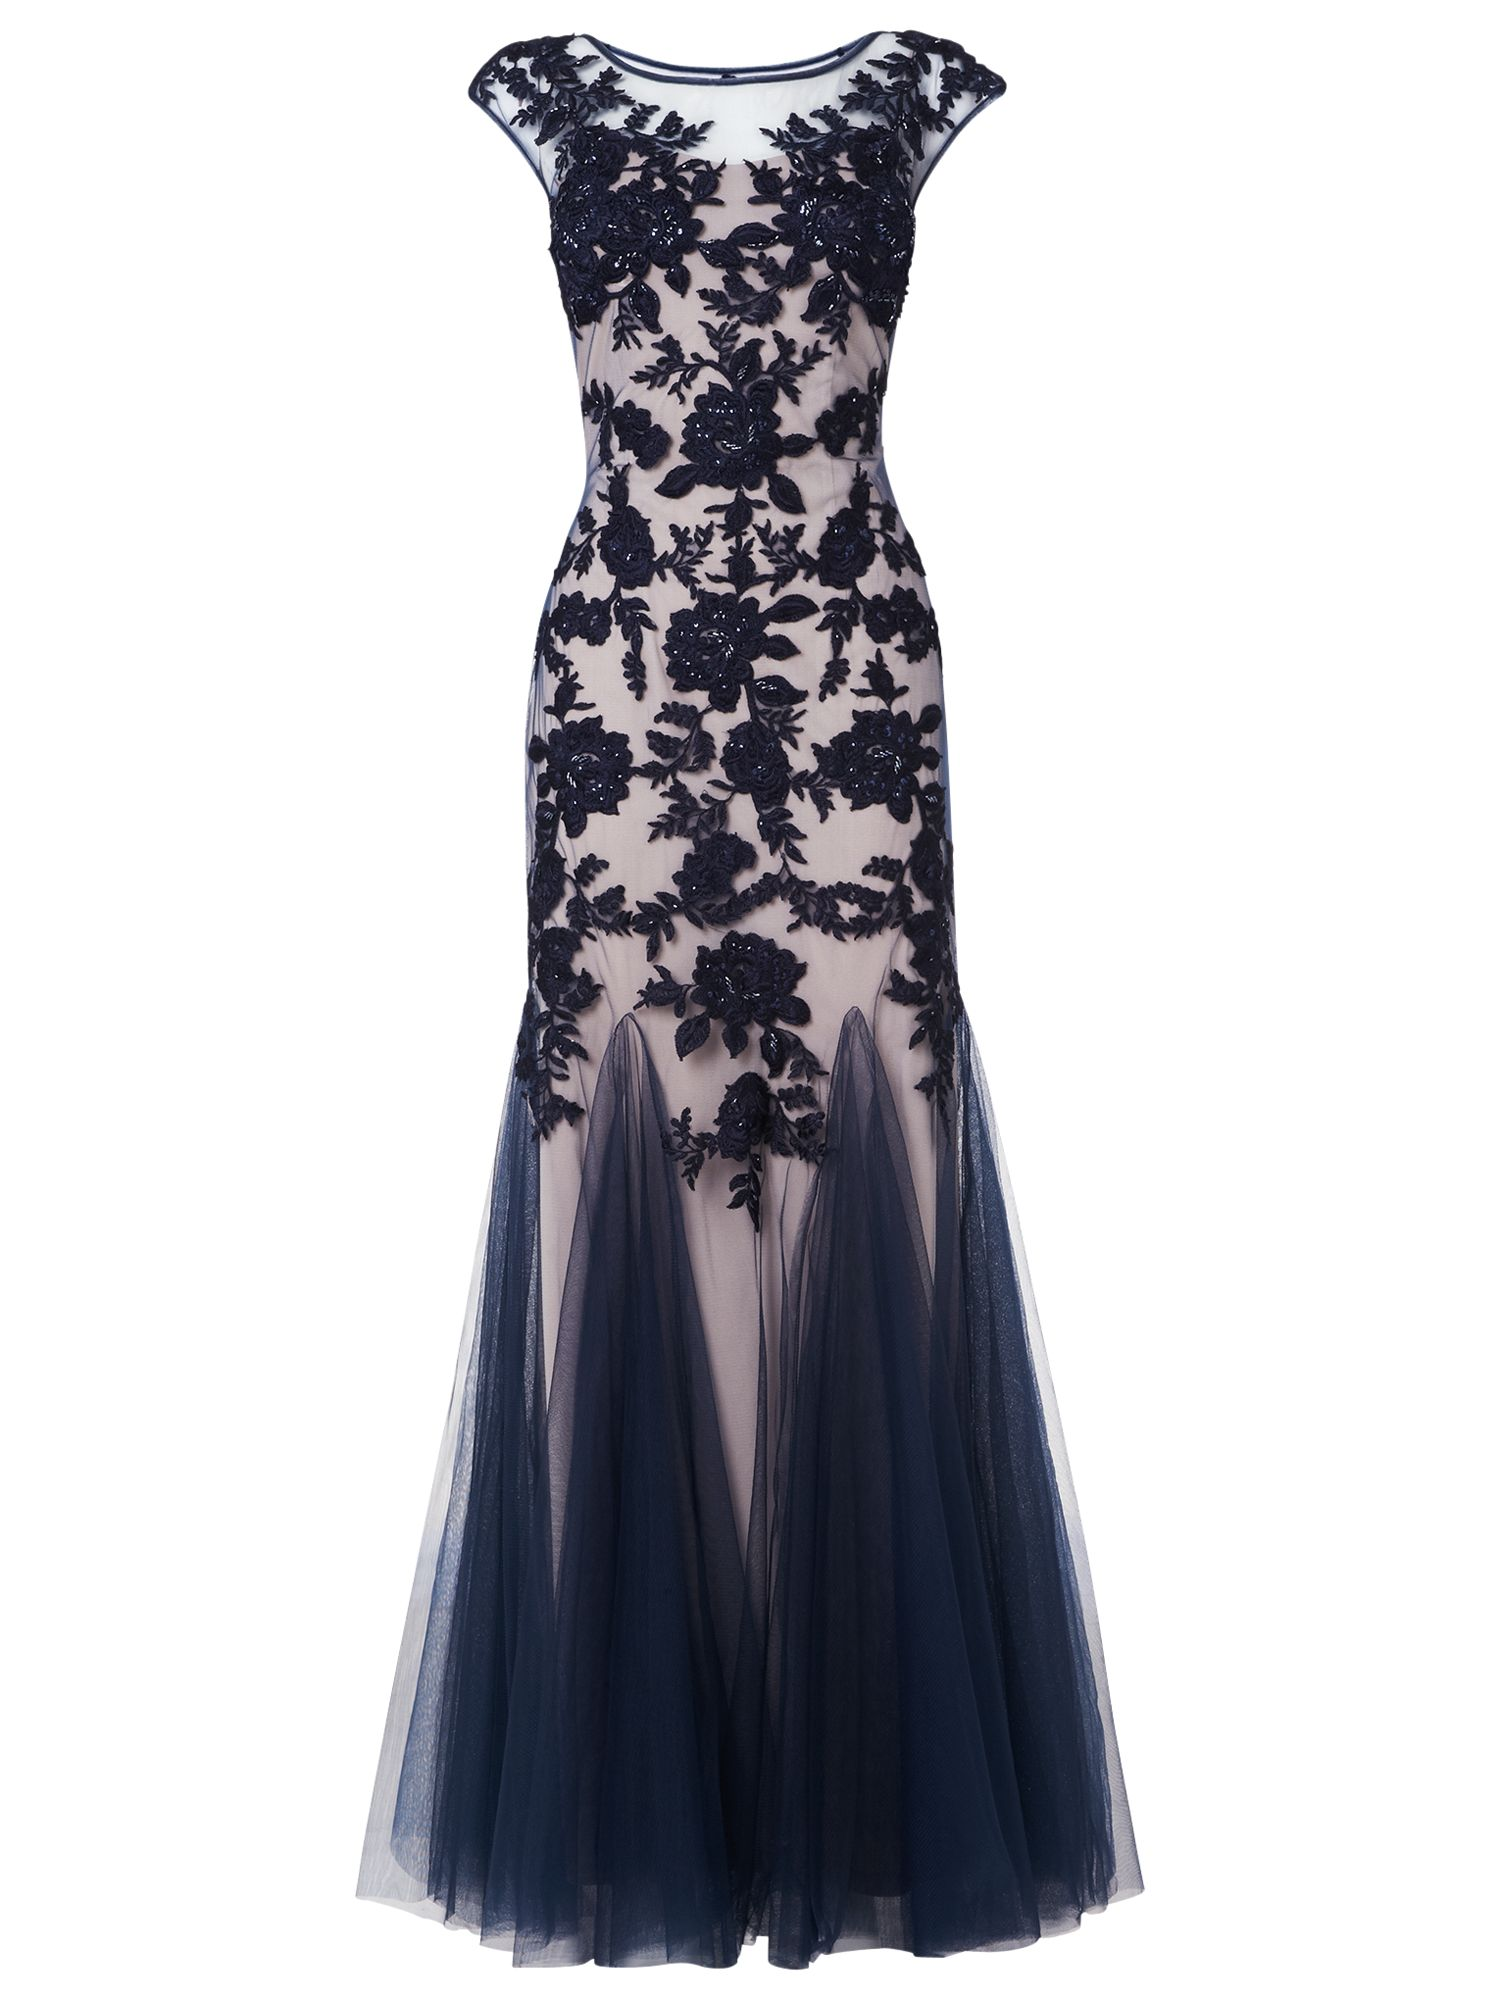 phase eight collection 8 rita tulle floral dress nude/midnight, phase, eight, collection, rita, tulle, floral, dress, nude/midnight, phase eight collection 8, 6|12|10|14|16|8|20|18, women, womens dresses, party outfits, evening gowns, fashion magazine, phase eight, inactive womenswear, special offers, womenswear offers, 20% off full price phase eight, brands l-z, 1601133